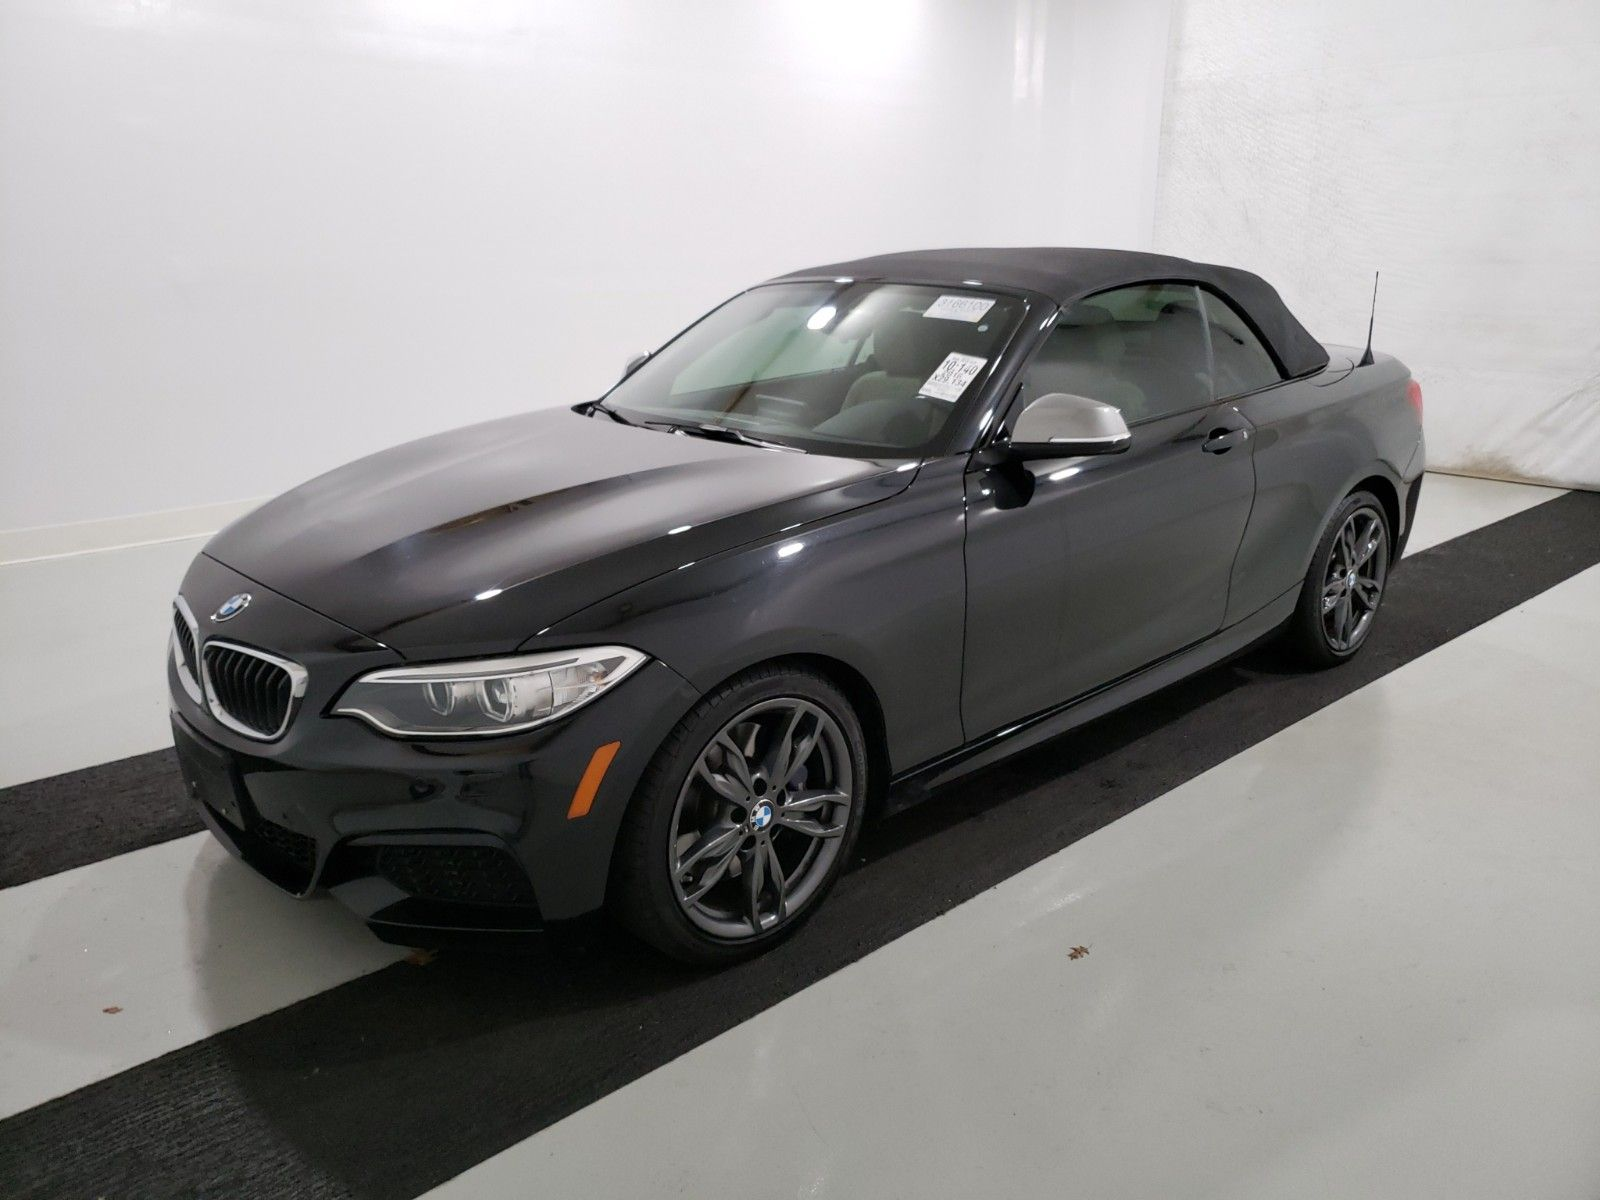 2016 BMW M235ix 3.0. Lot 99913763597 Vin WBA1M5C50GV326596